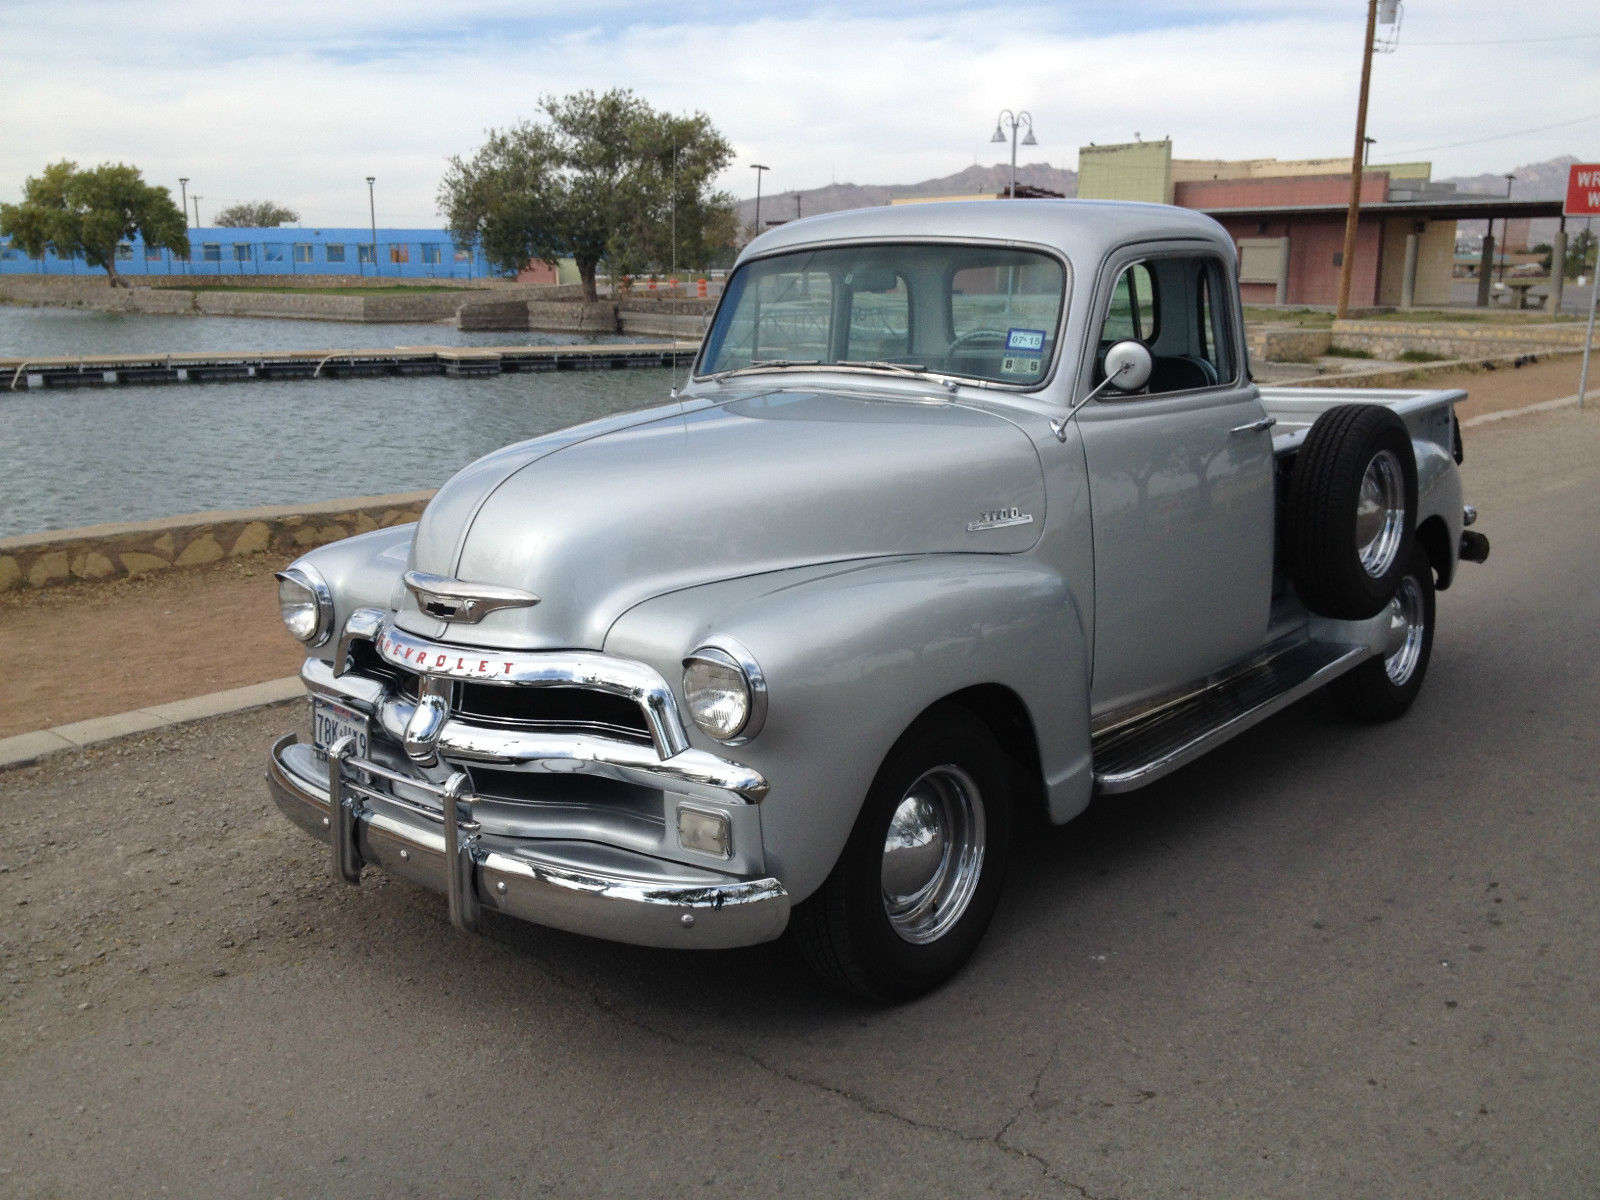 1954 Chevrolet Pickup 5 Window Automatic For Sale In El Paso Texas Pick Up United States